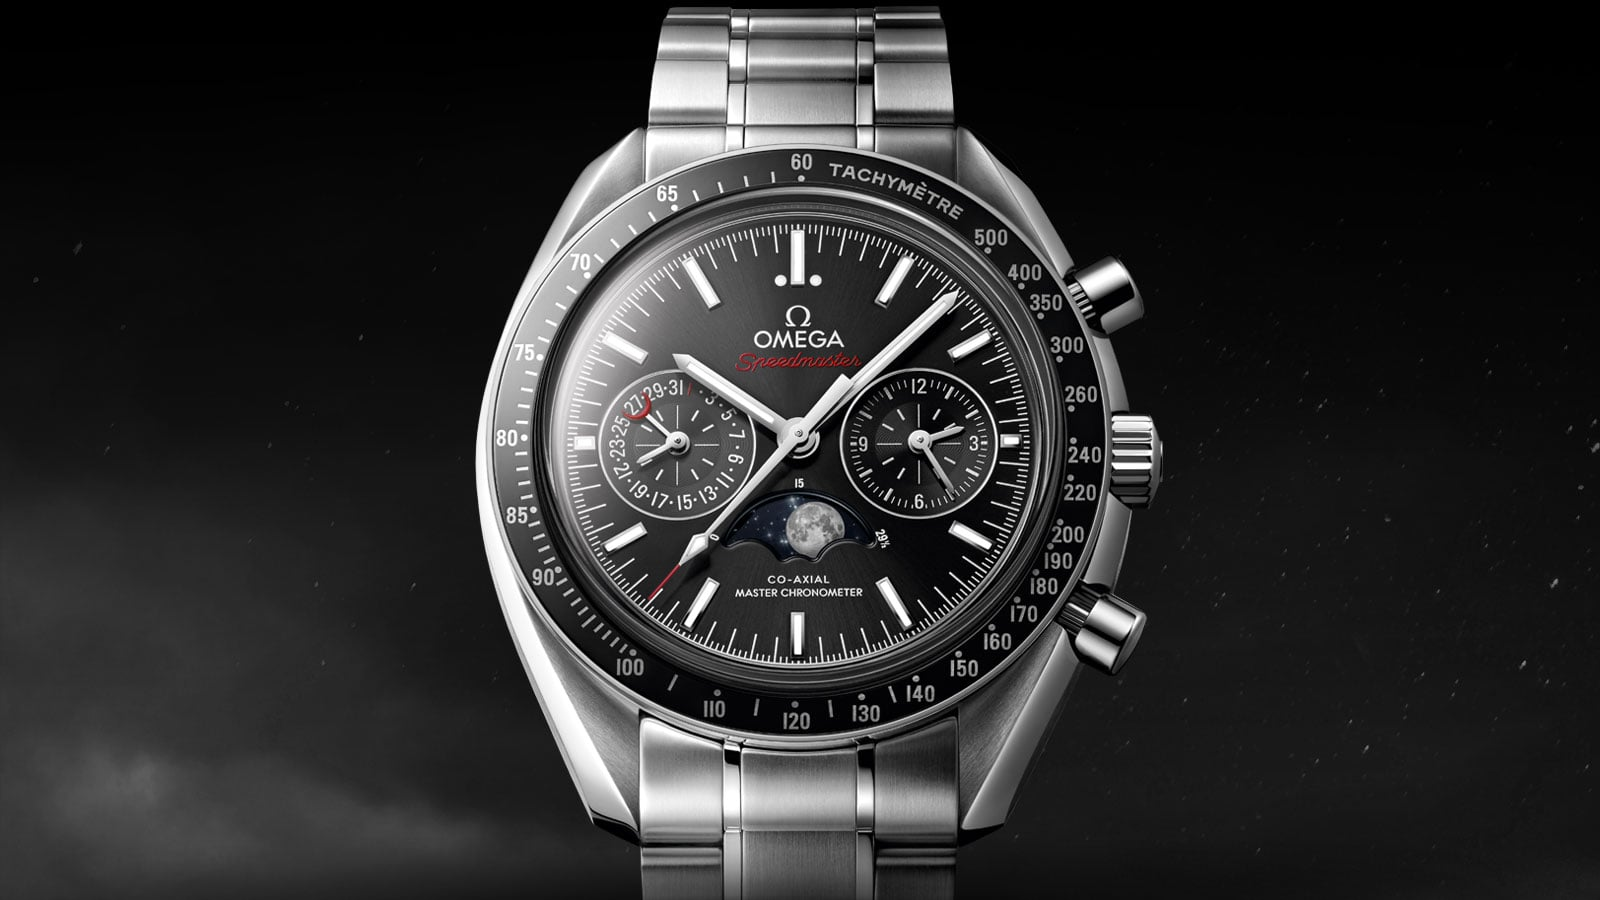 Speedmaster Moonwatch Moonphase - Slide 1 - 3084